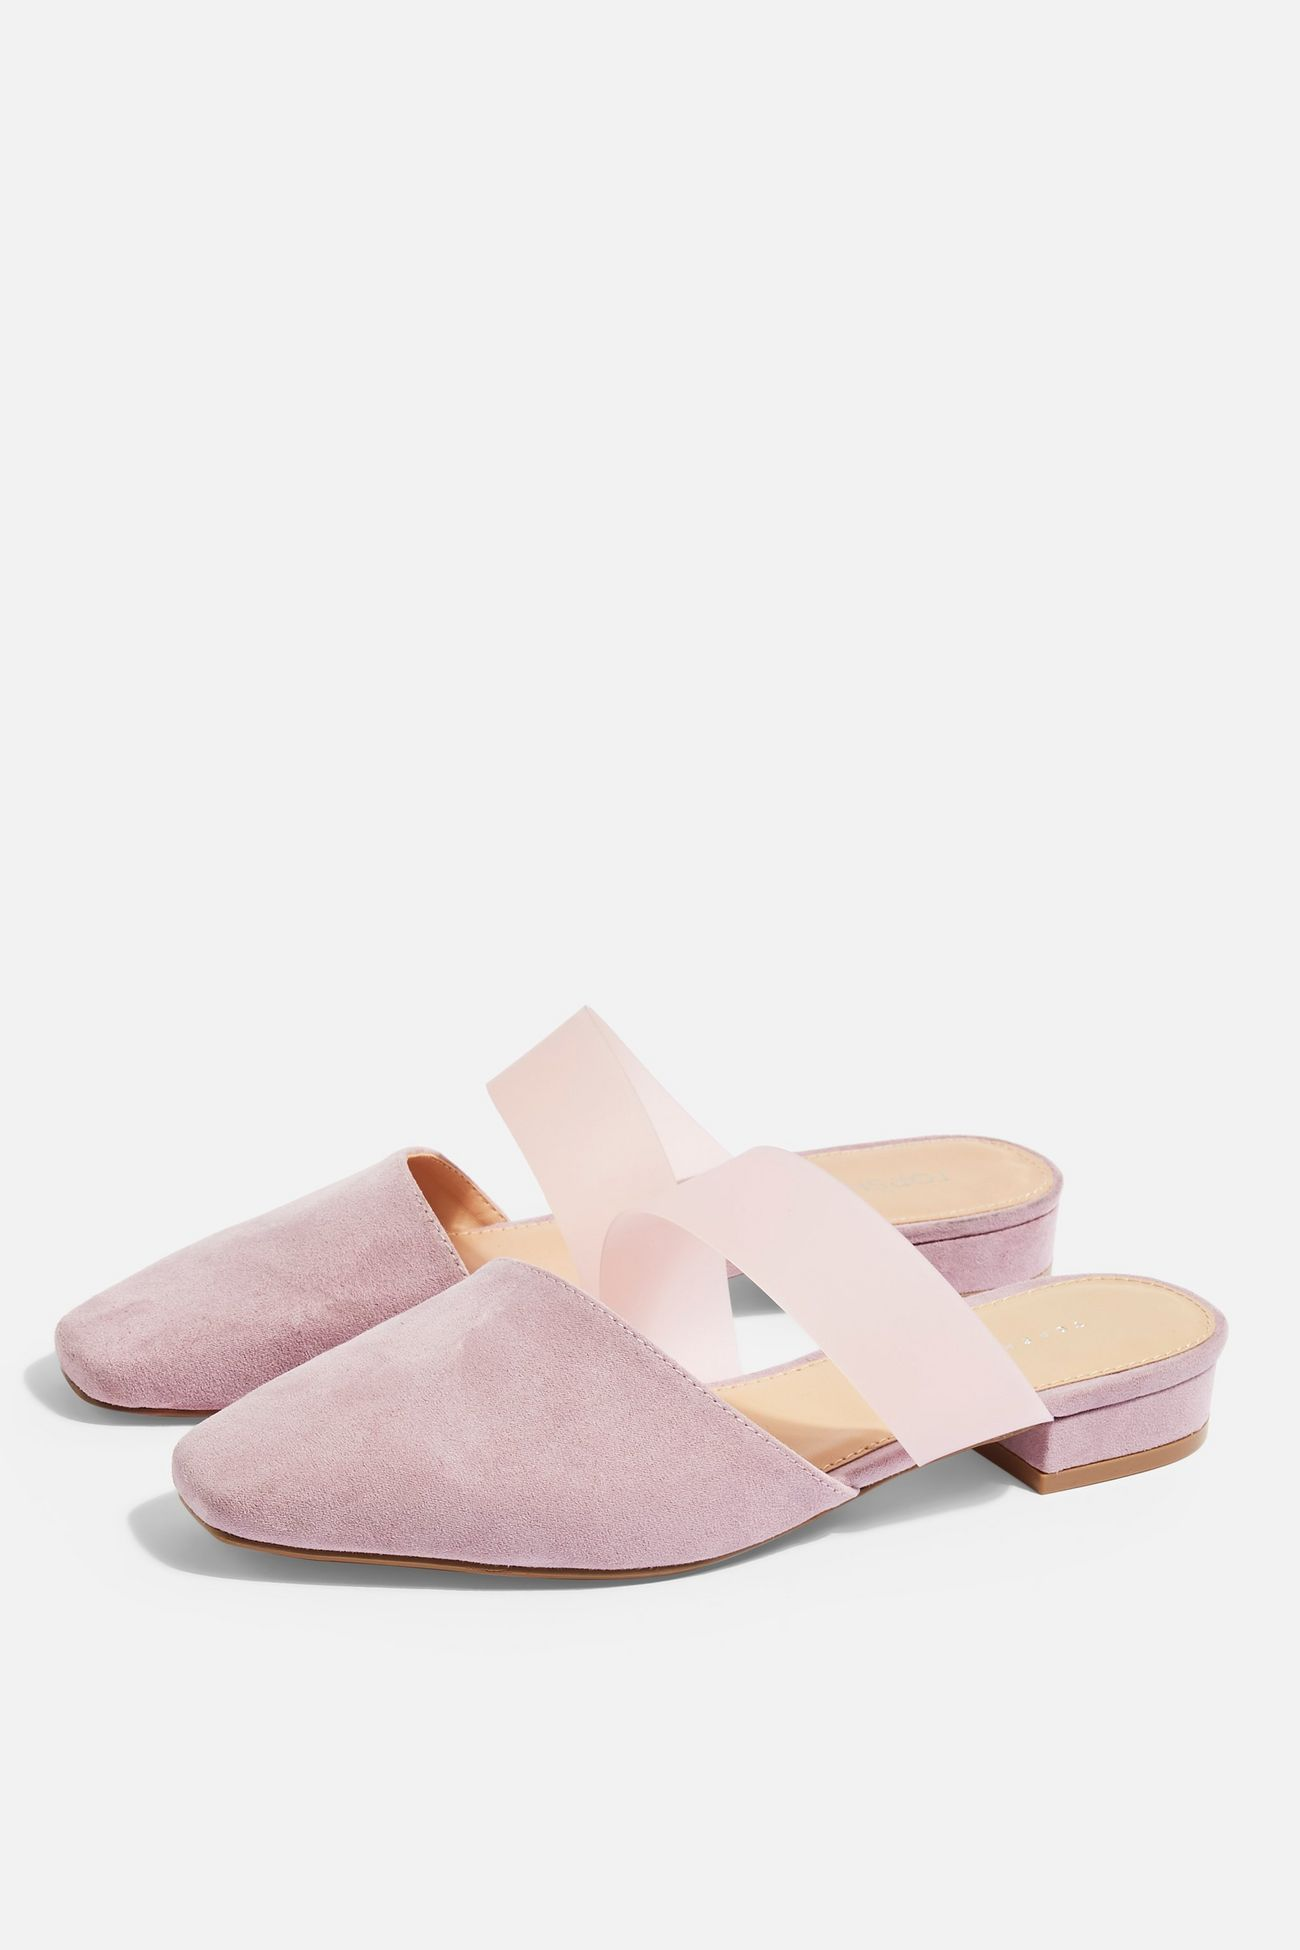 7d2358462a05e ALPHA Lilac Strap Mules in 2019 | Spring / Summer 2019 | Mules shoes ...